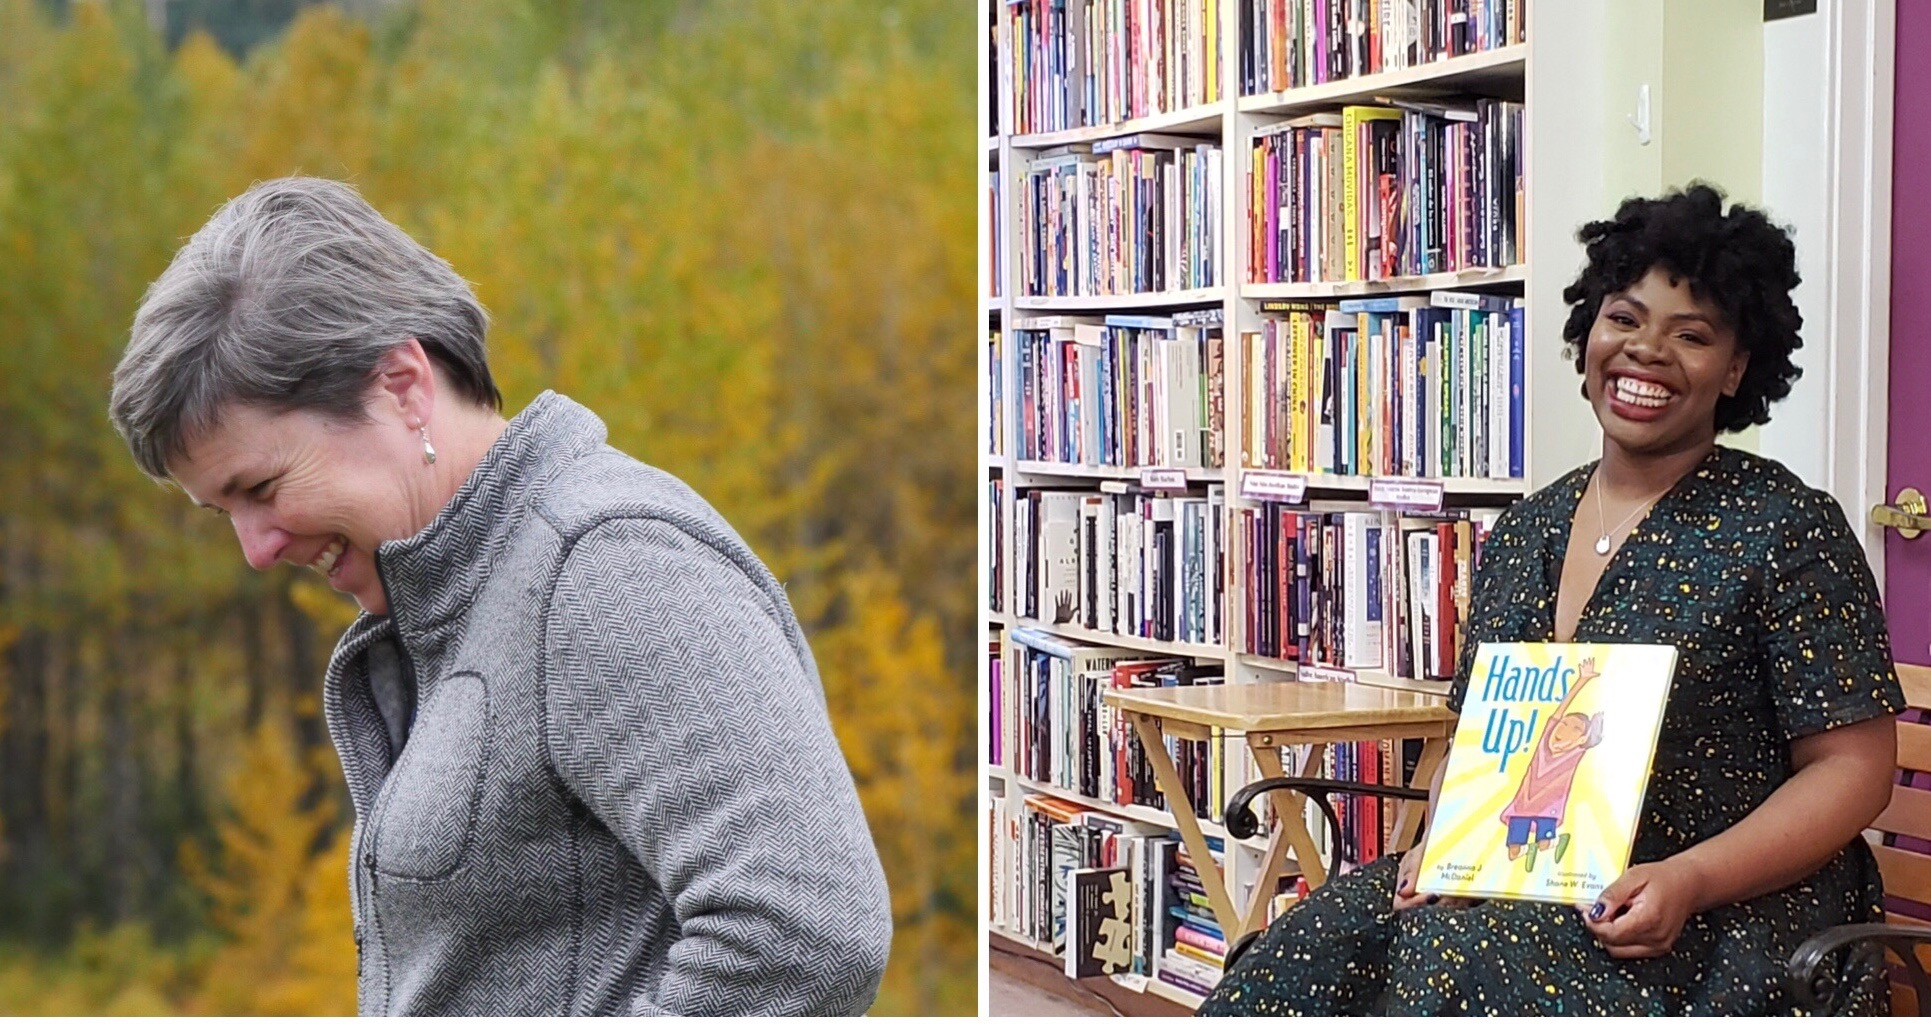 New Voices: Authors Jenn Bailey & Breanna McDaniel on Writing Highly Personal Stories for Children